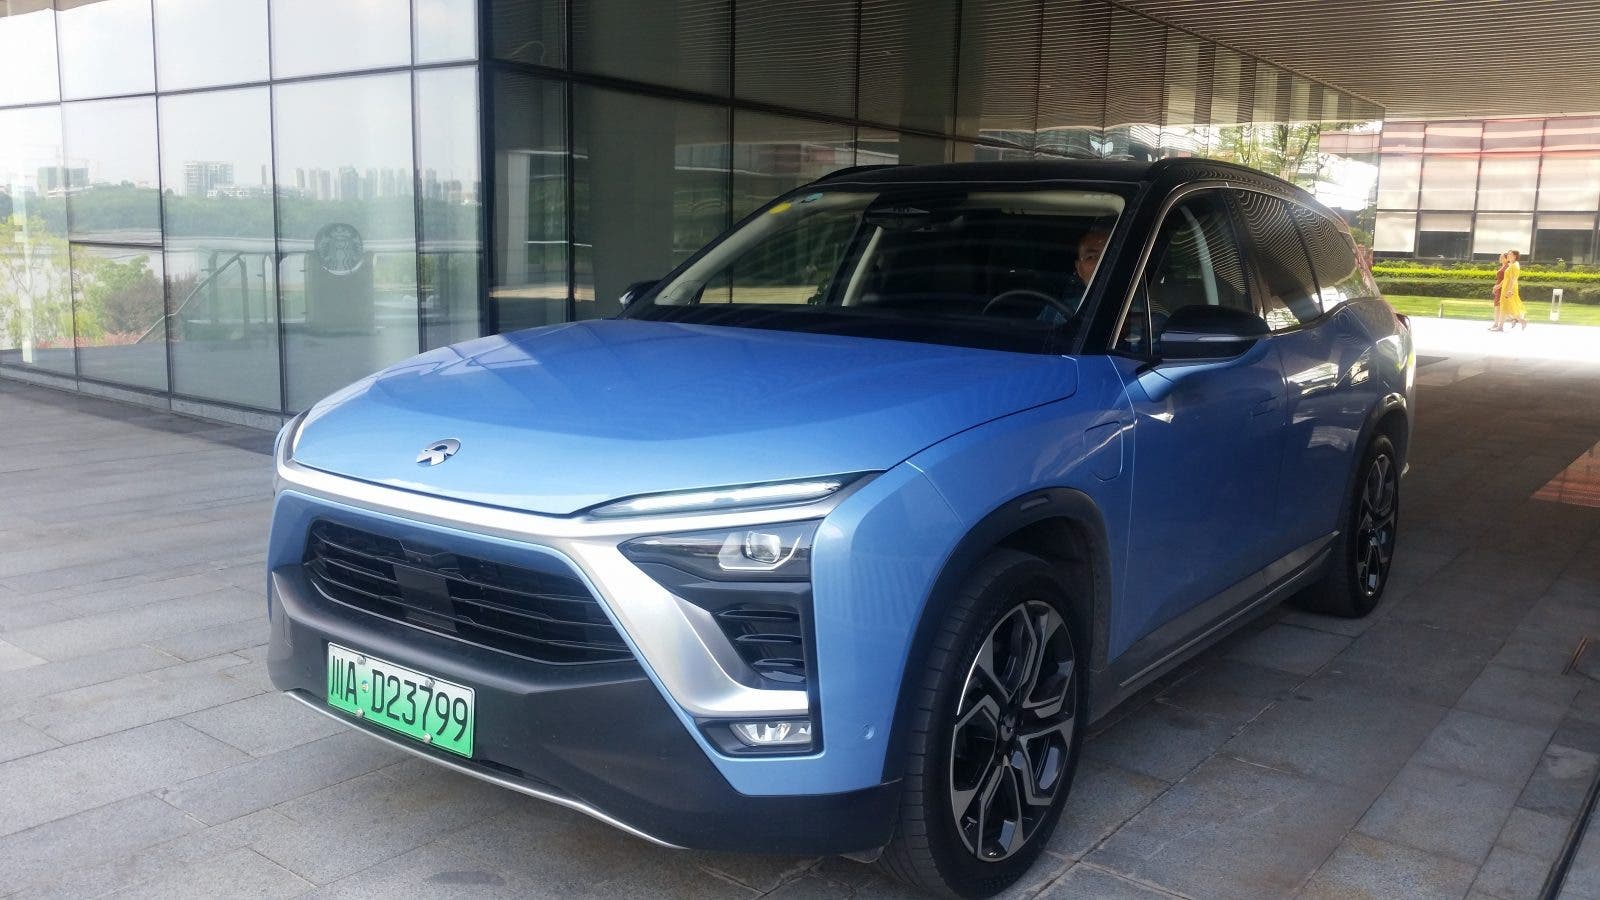 Nio S Q3 Financials Are In